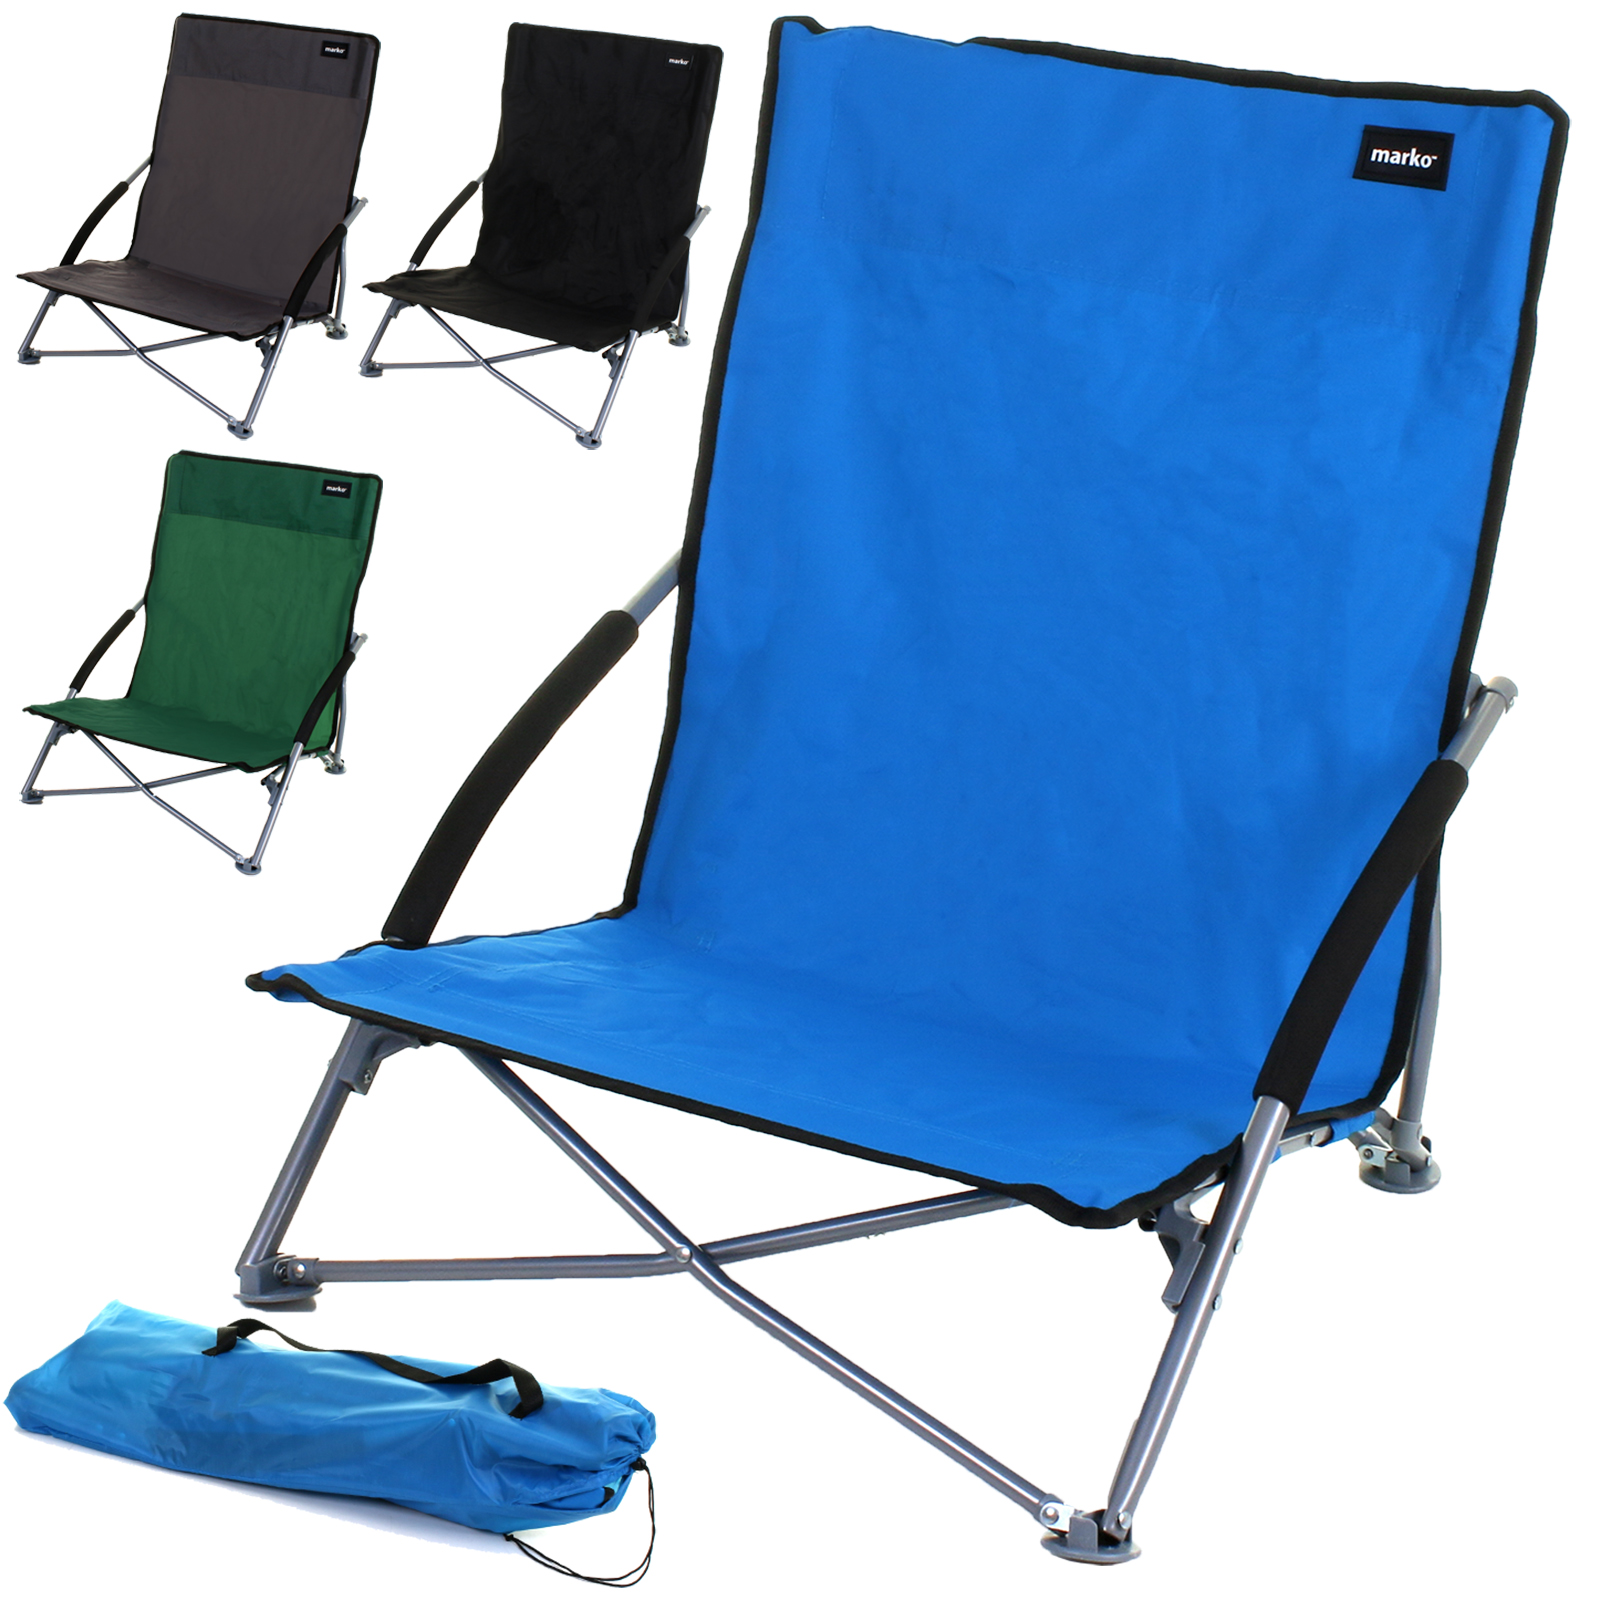 Low Folding Beach Chair Details About Beach Chair Low Slung Folding Camping Festival Pool Picnic Deckchair Lounger New